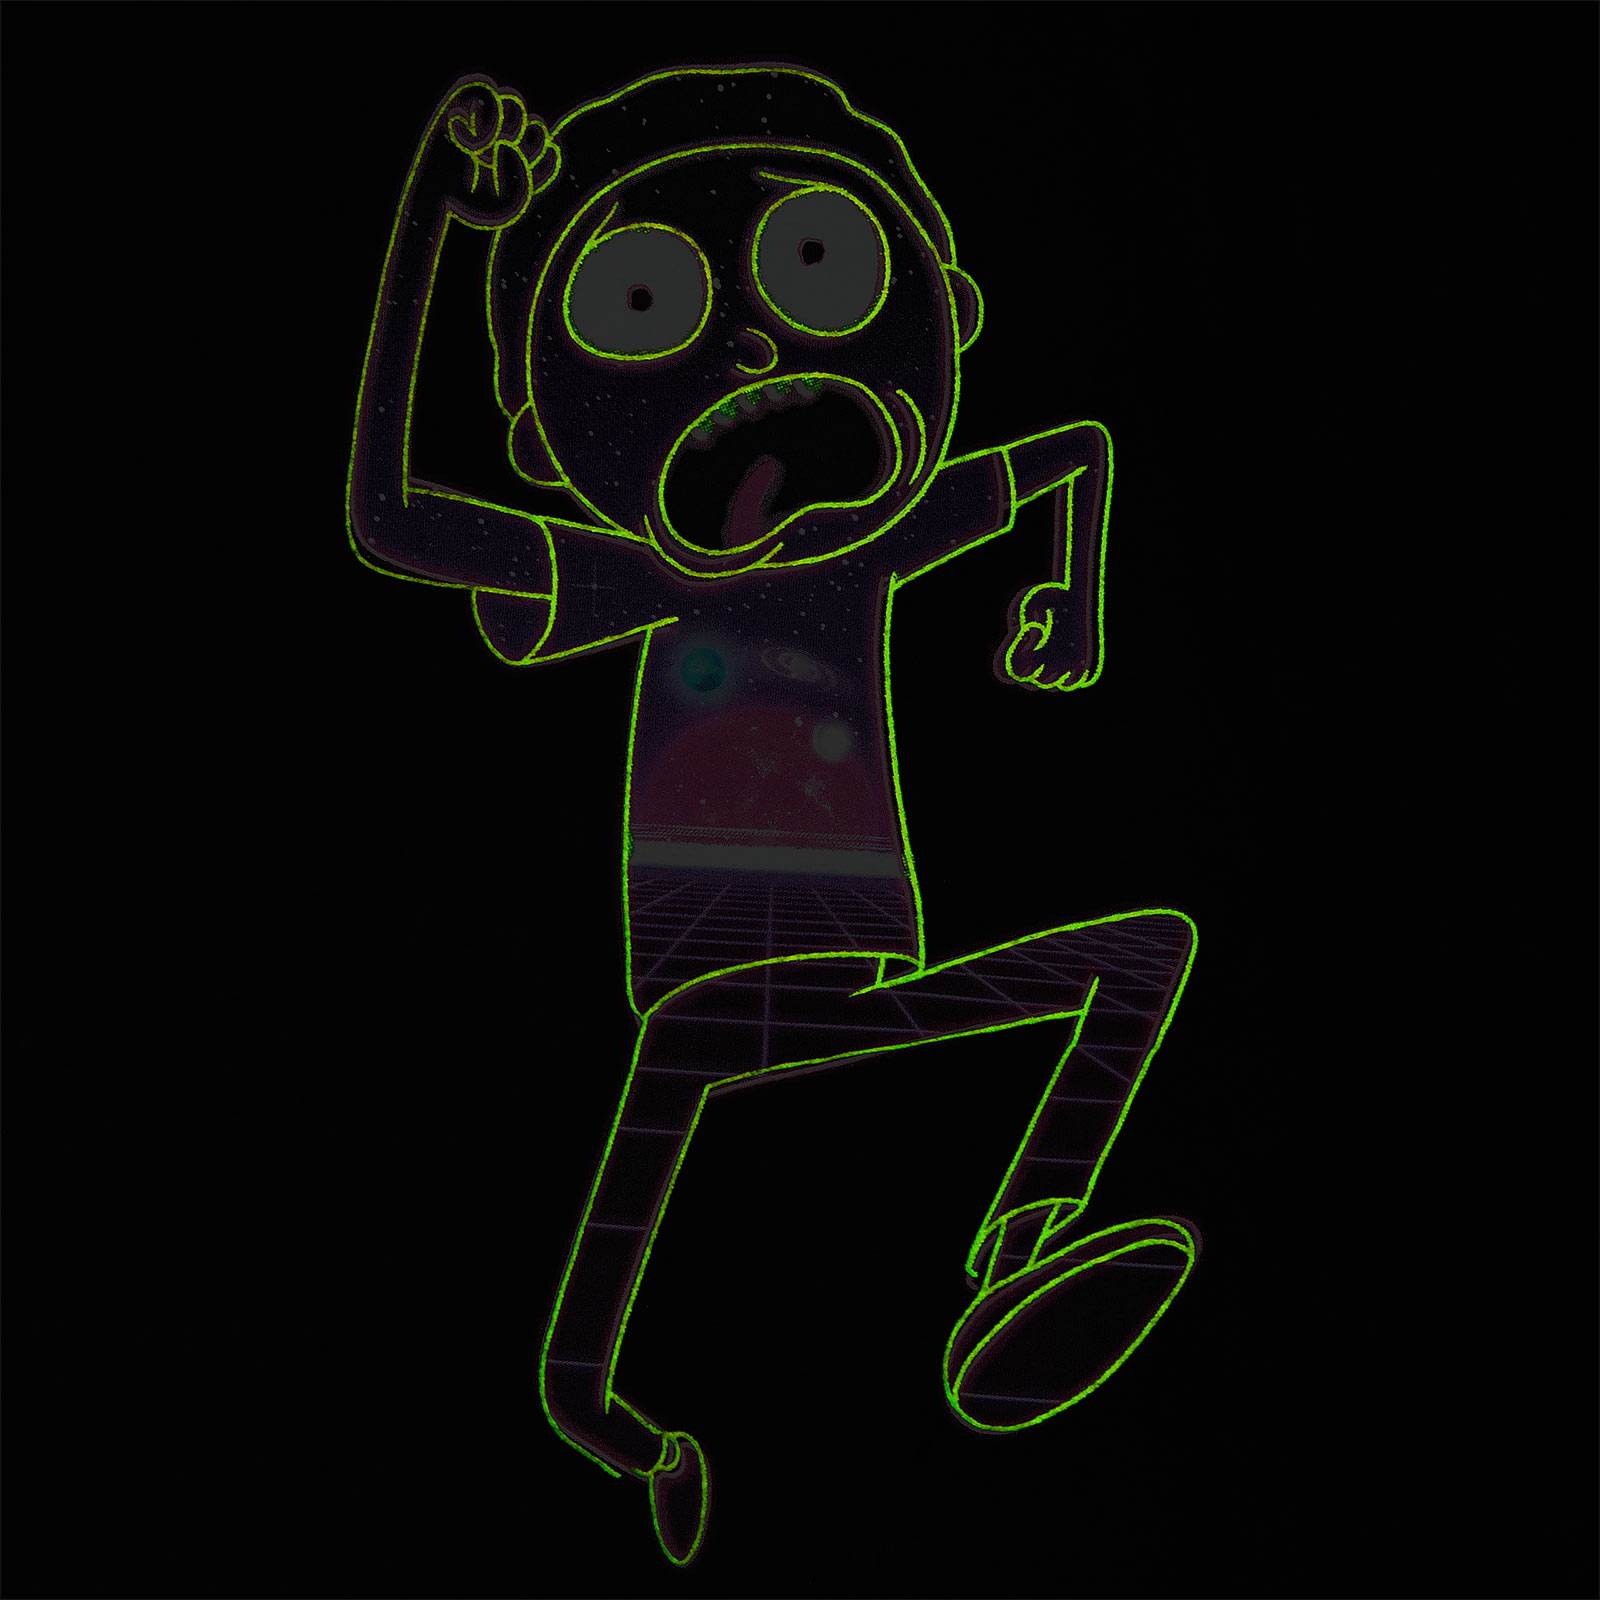 Rick and Morty - Neon Morty Glow in the Dark T-Shirt schwarz